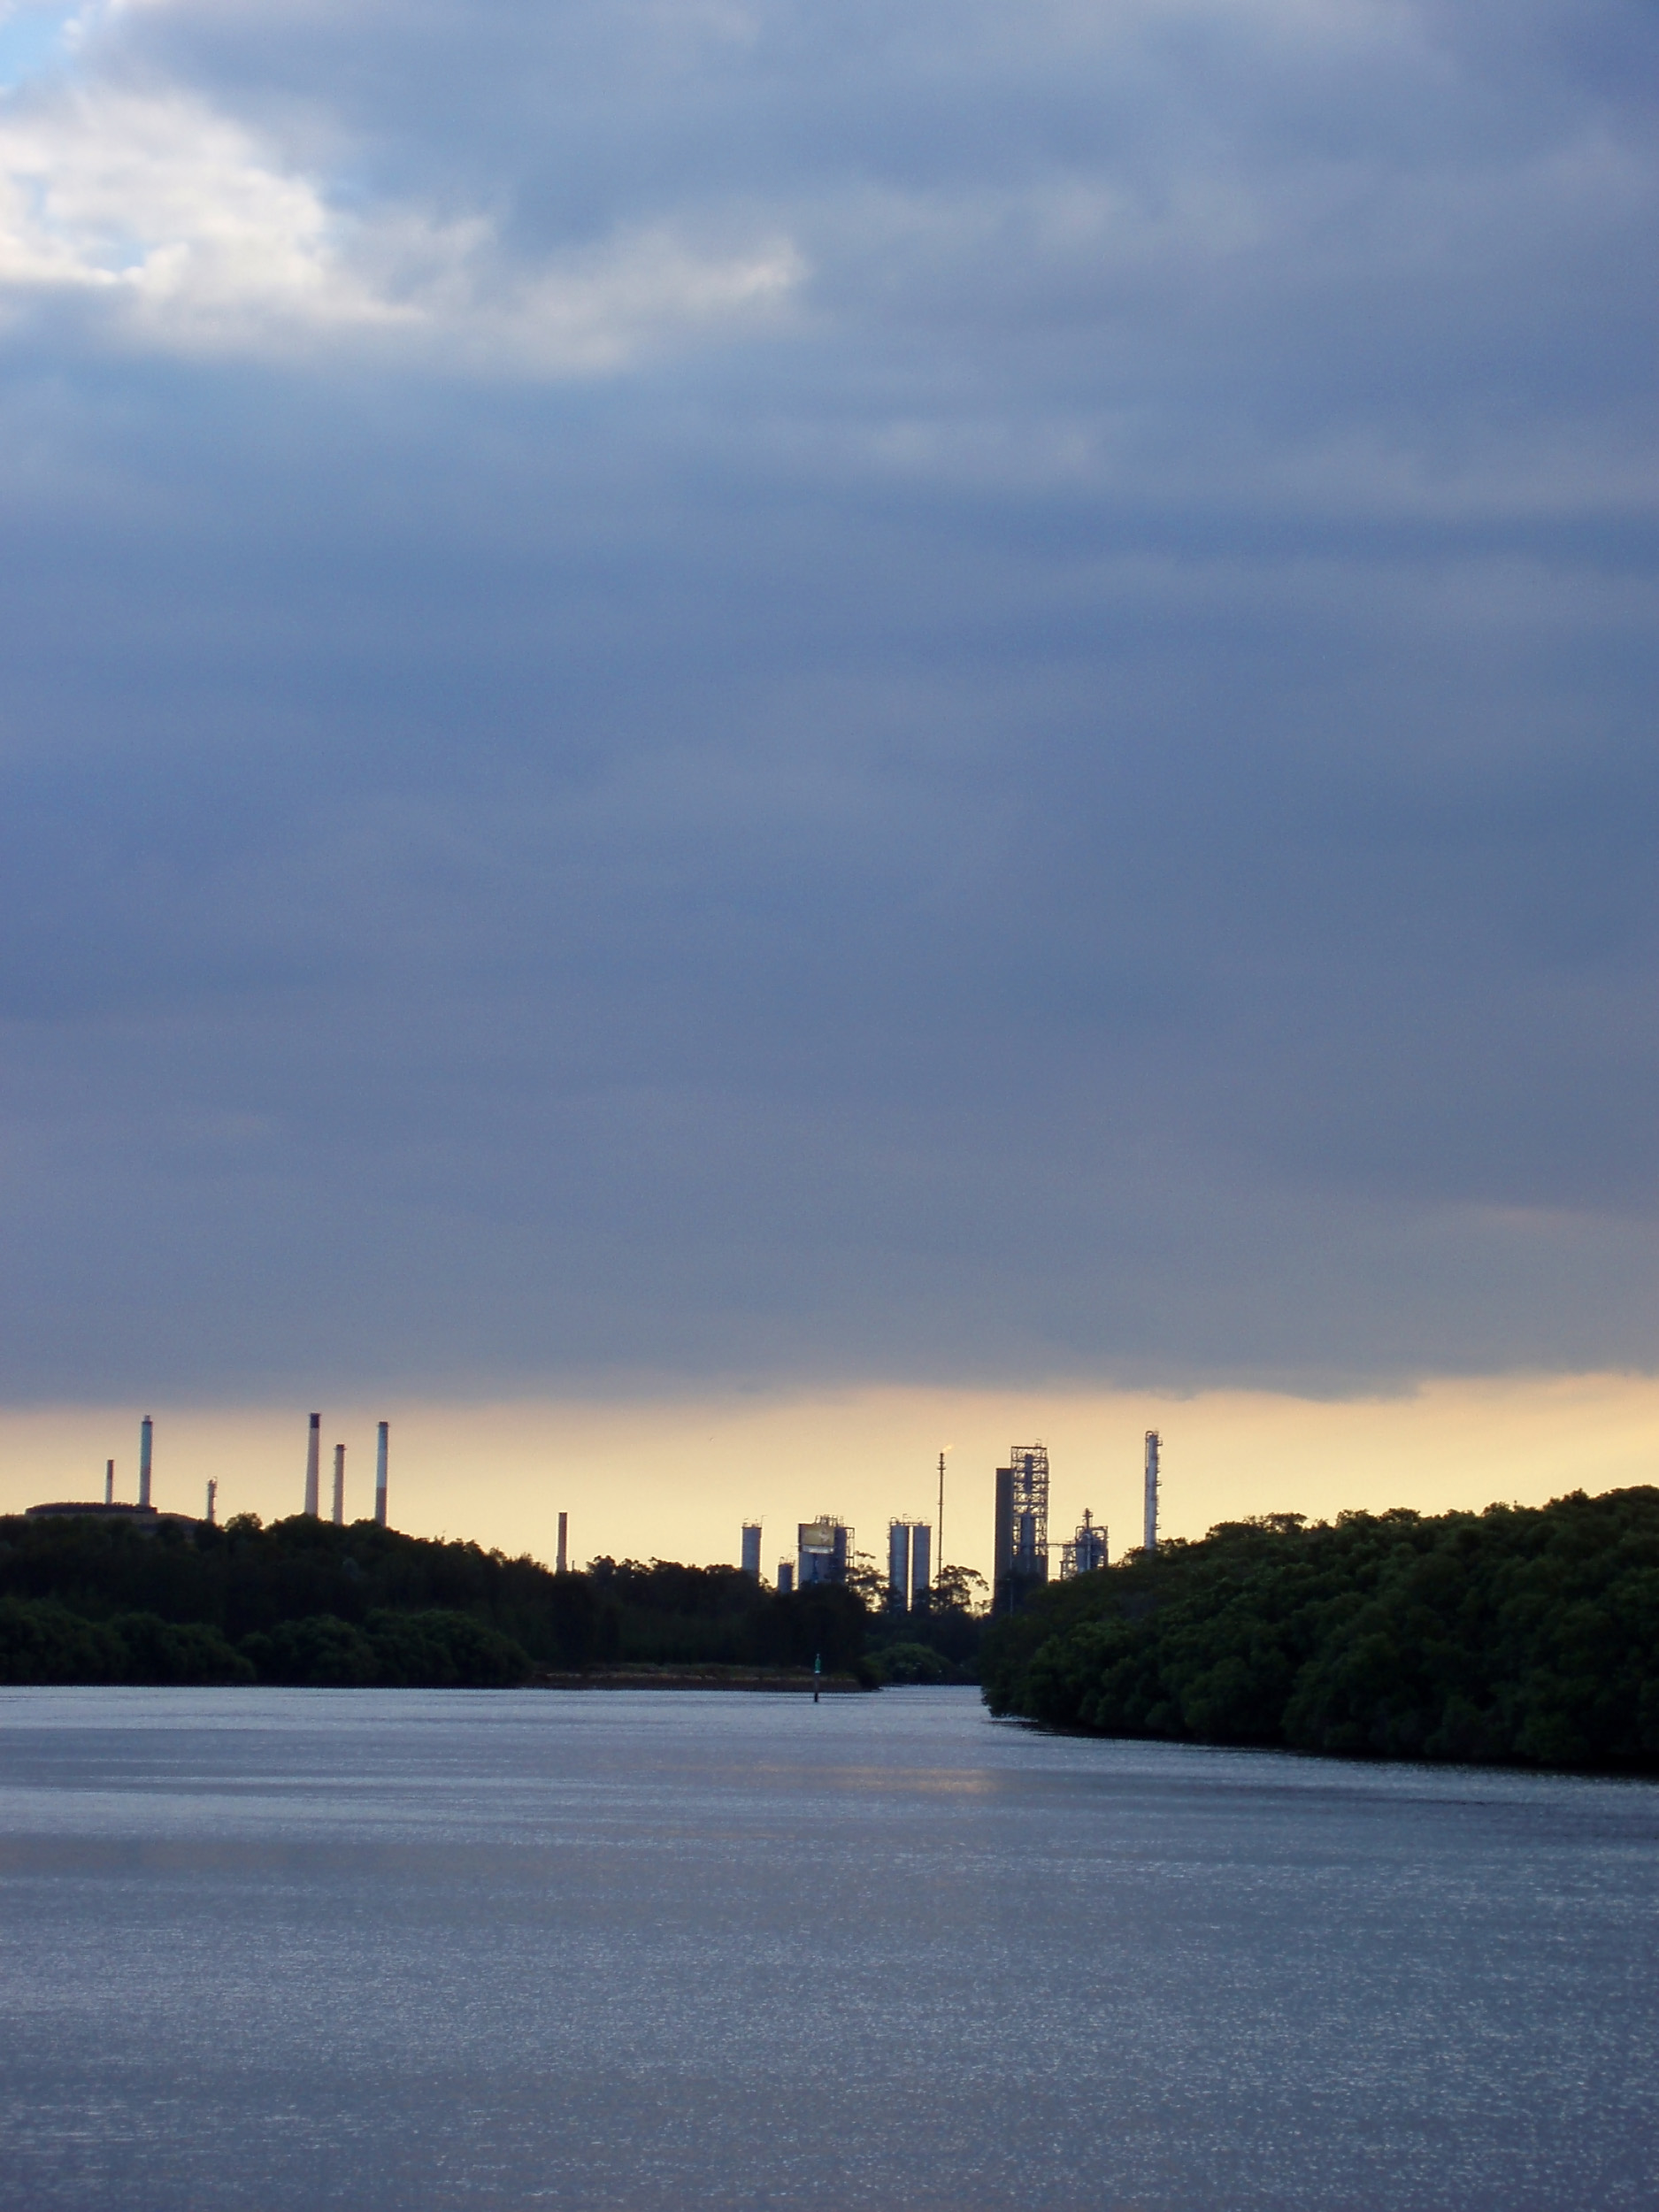 oil refinery plant and heavy industry on the parramatta river at clyde in sydneys west